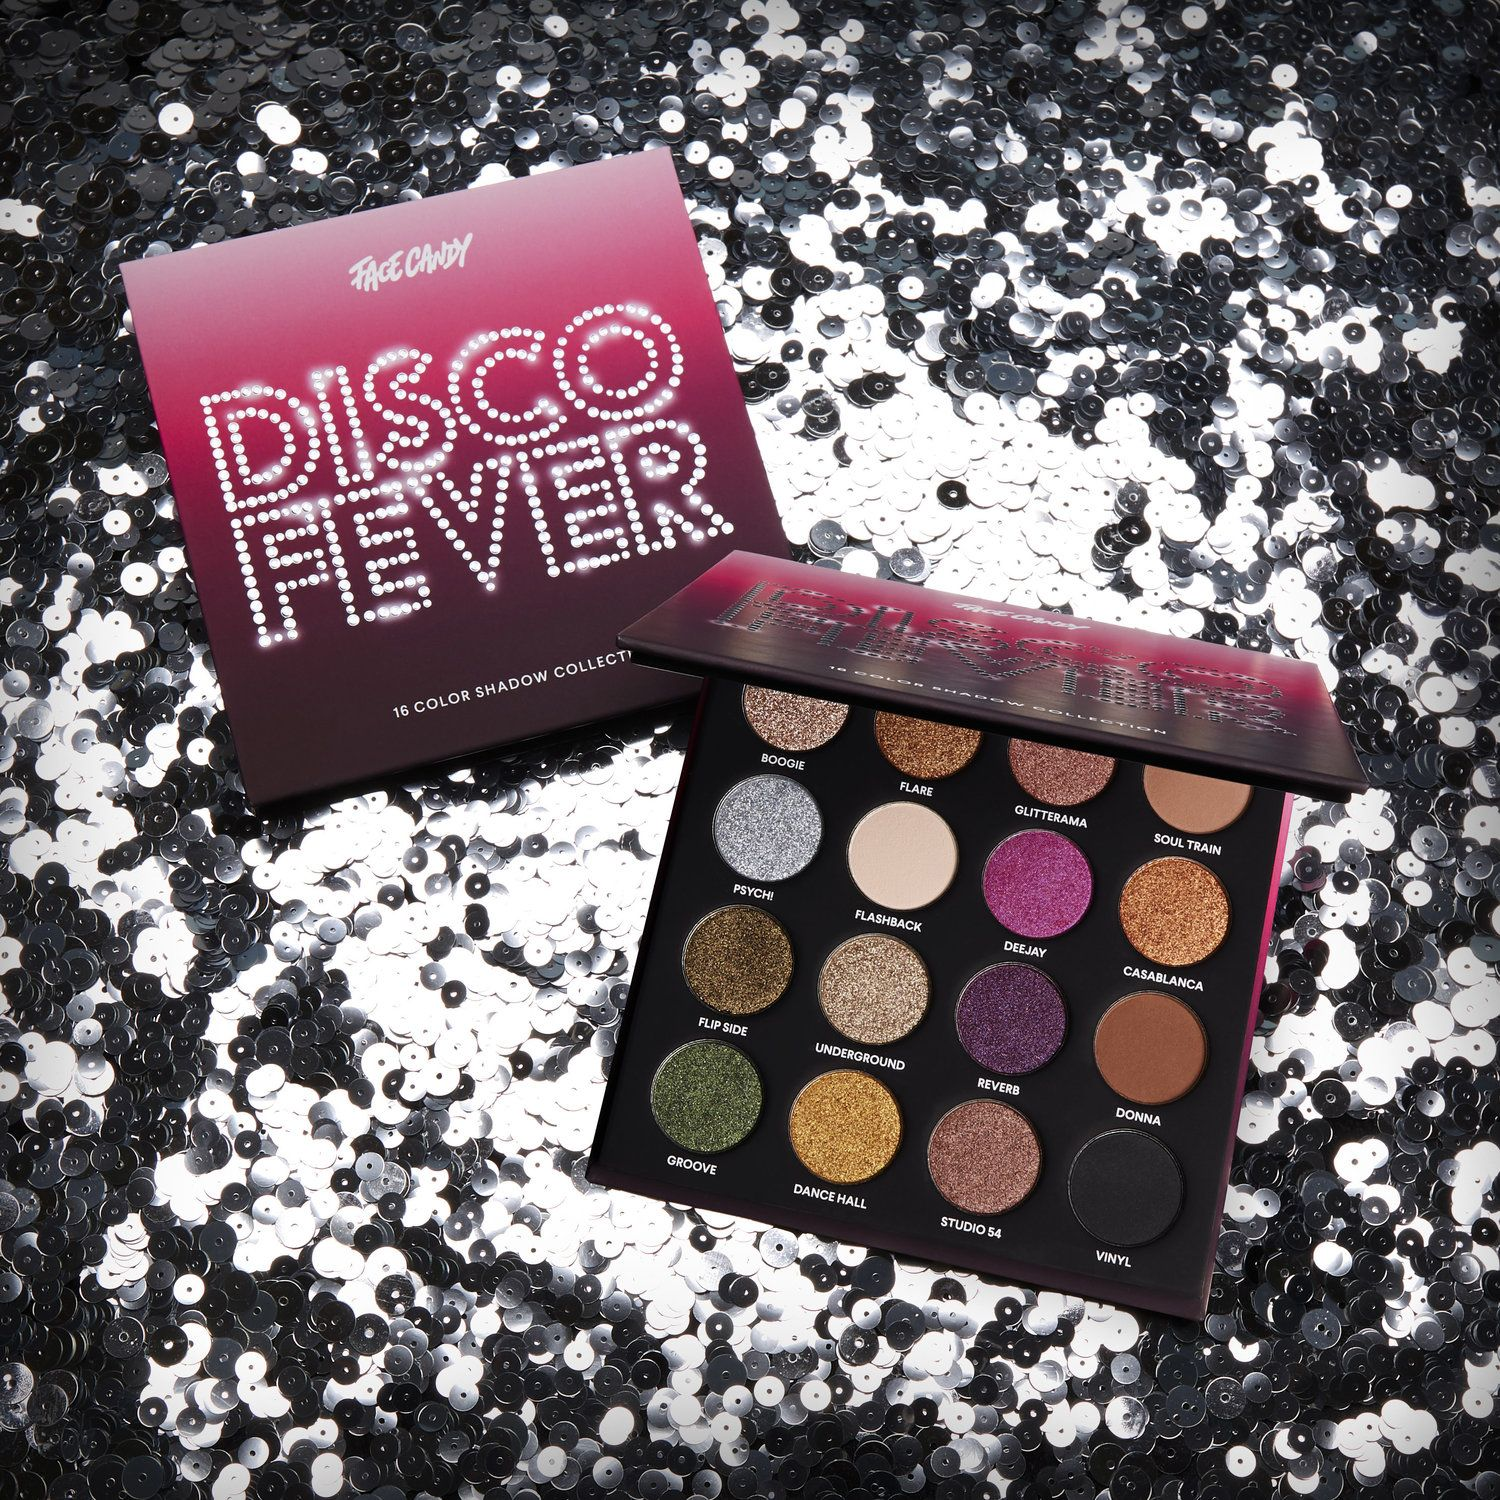 Face Candy Disco Fever Palette (With images) Disco